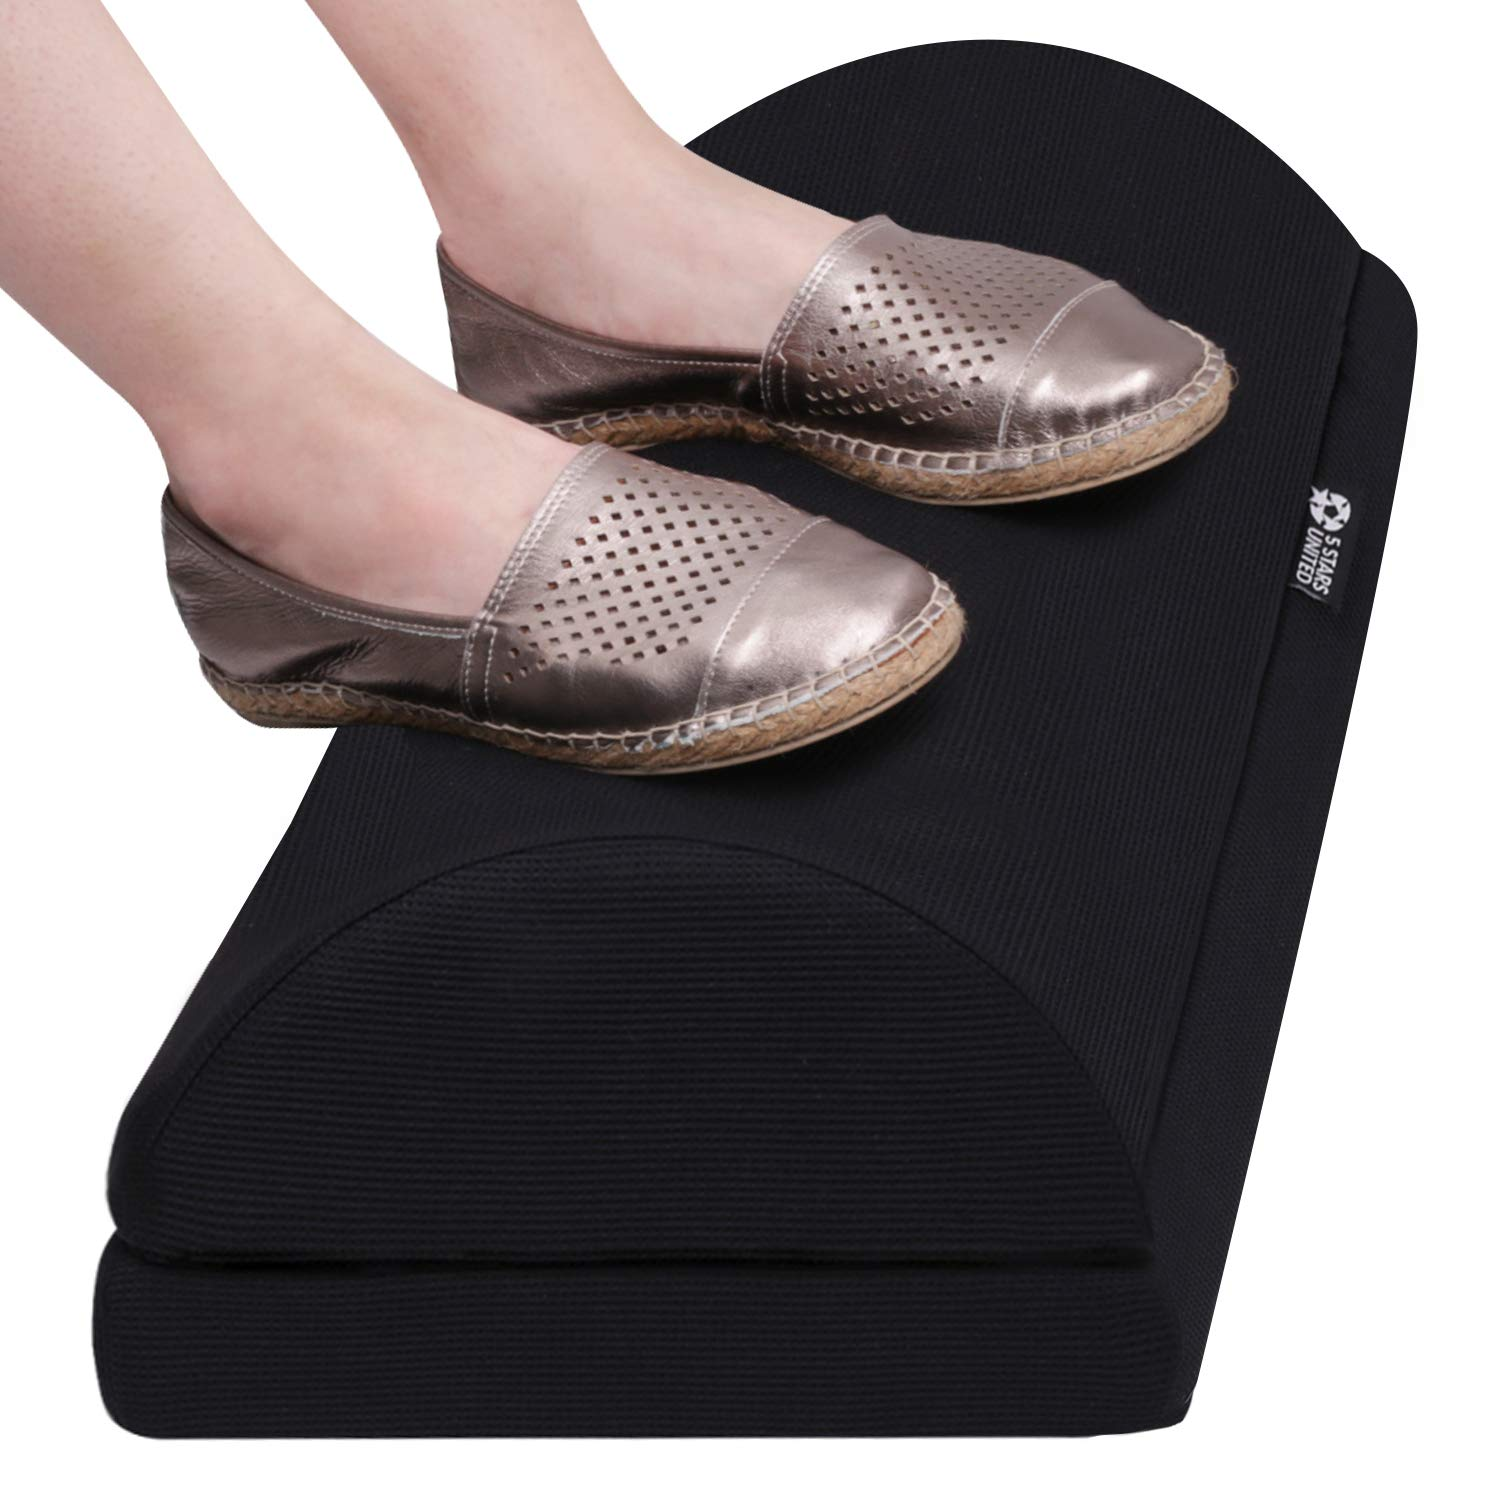 Foot Rest Under Desk Cushion - Foot Stool for Home and Office - 100% Memory Foam - Breathable Mesh Cover - Non-Slip Bottom - Adjustable Height - Ergonomic Half-Cylinder Pad for Extra Leg Support